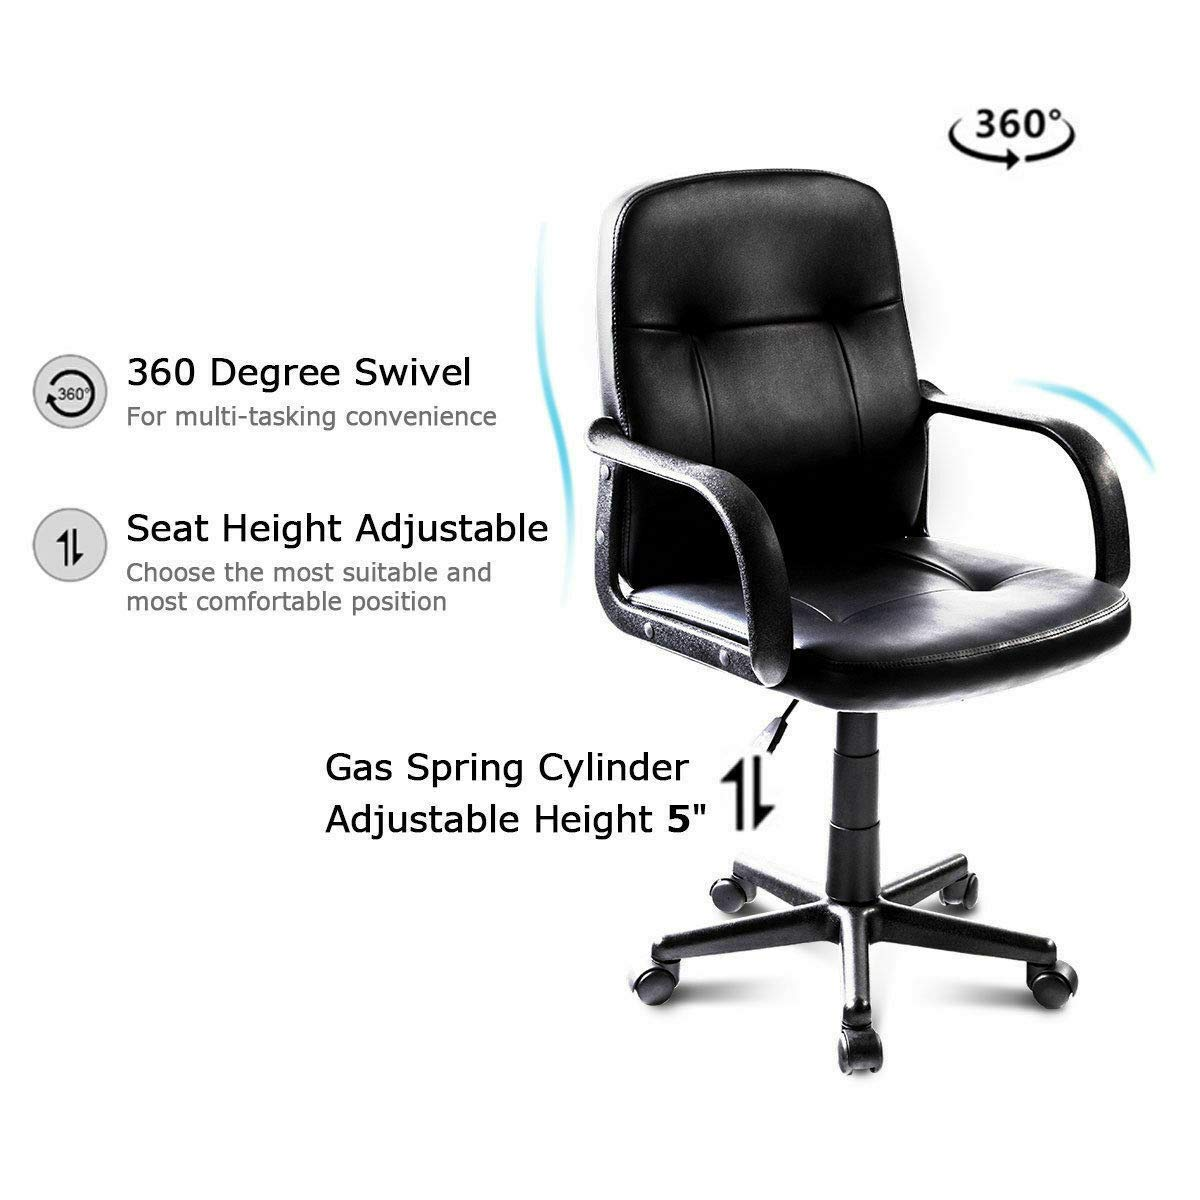 Seleq Compact Black PU Leather Desk Chair for Home Office by Seleq (Image #4)